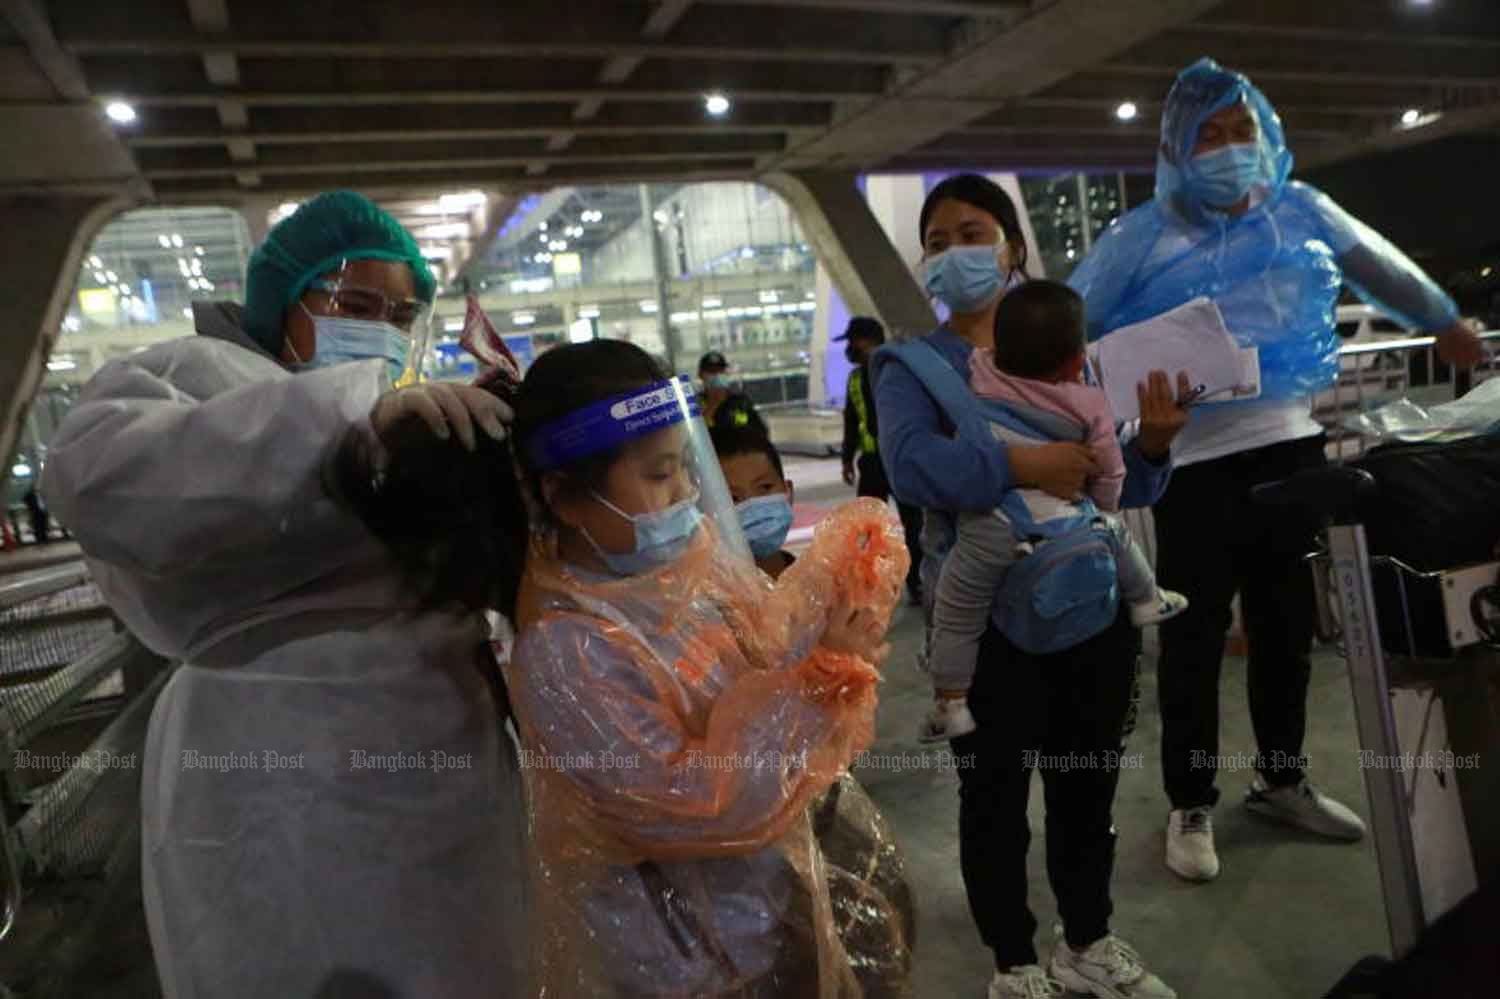 Chinese passengers arrive Suvarnabhumi airport on Oct 20. They are among the first group of Chinese visitors to come to Thailand courtesy of the new Special Tourist Visa (STV). (Photo by Somchai Poomlard)